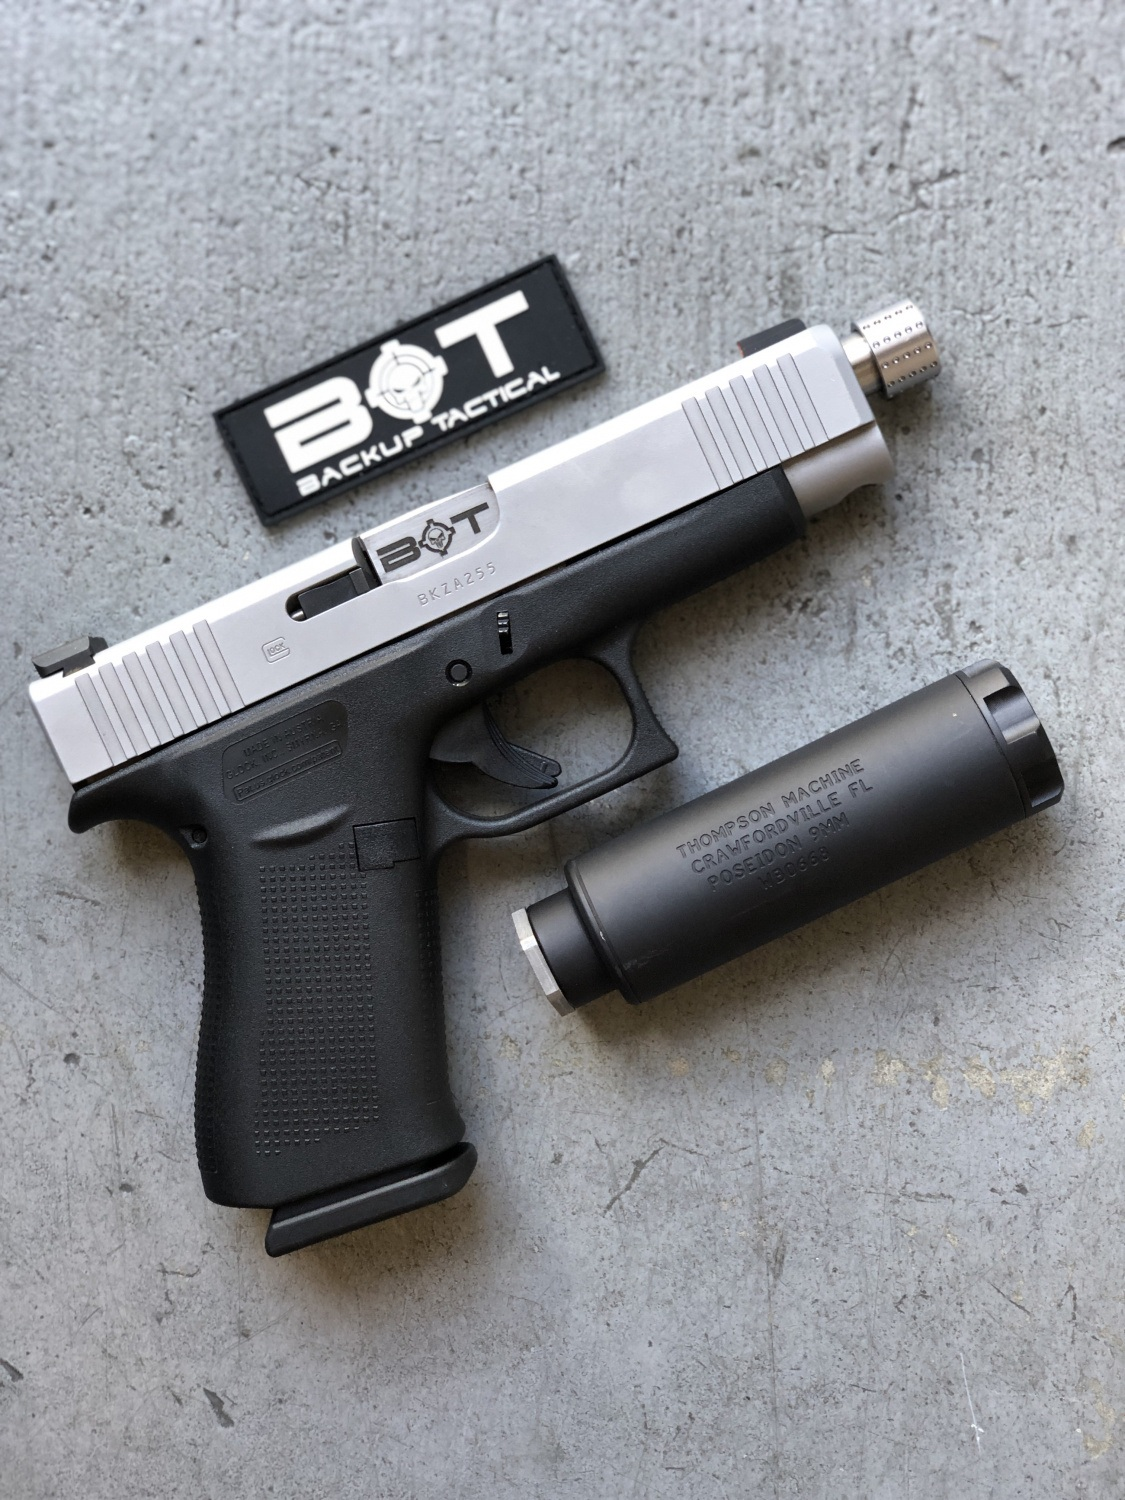 backup tactical with suppressor